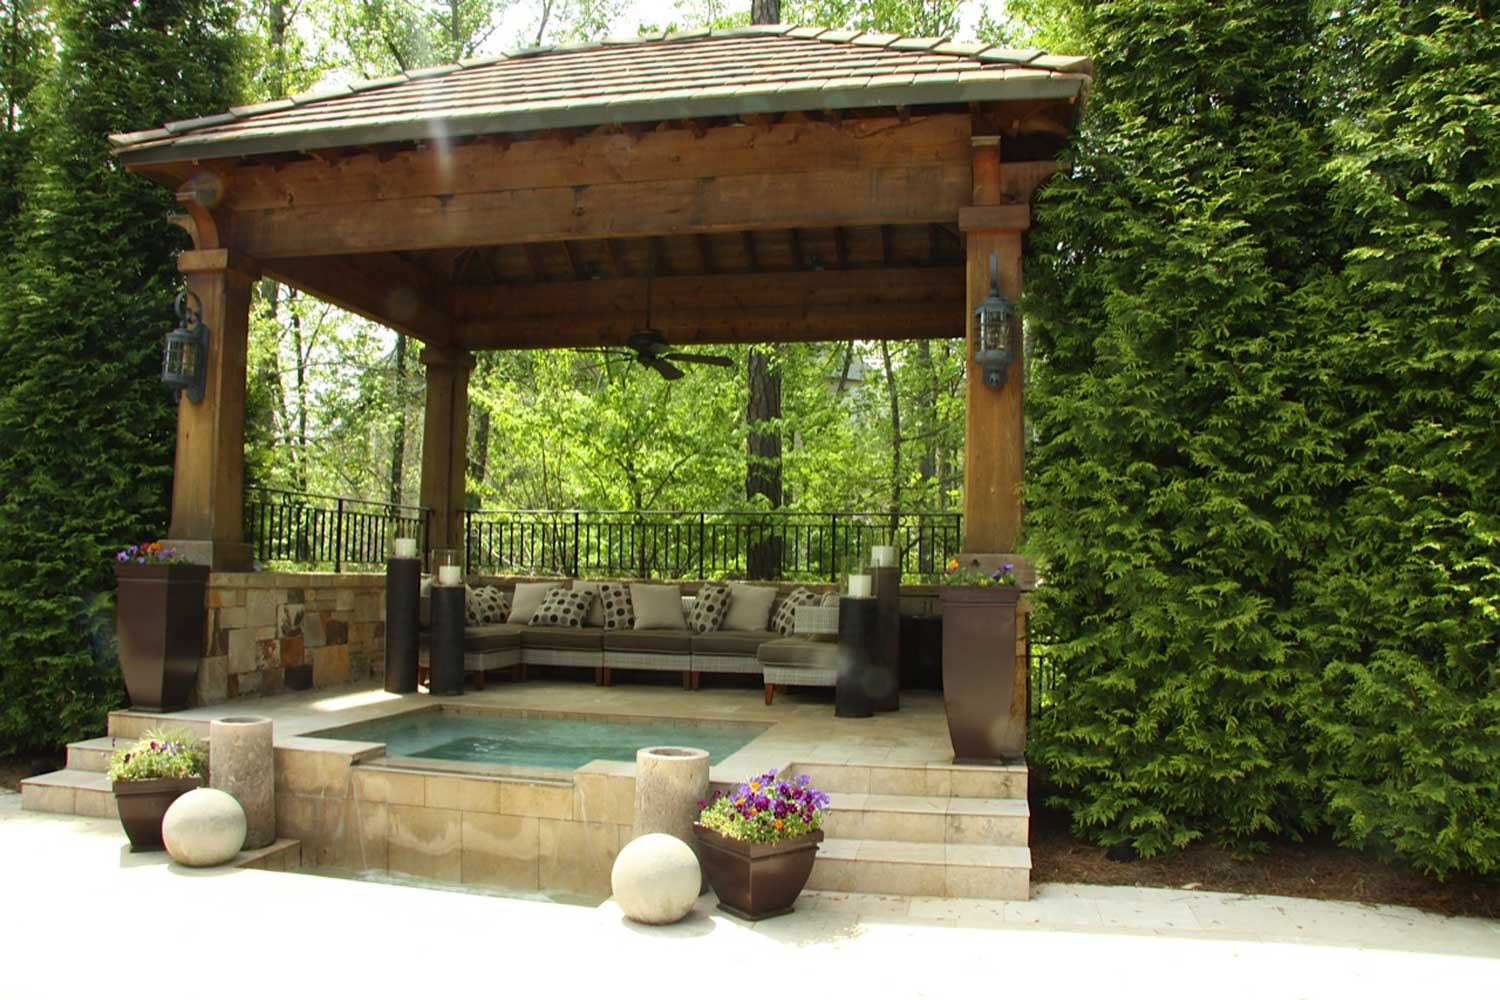 House And Interior Design: The Inspiration : Outdoor Living Areas As Comfortable Family Favorite